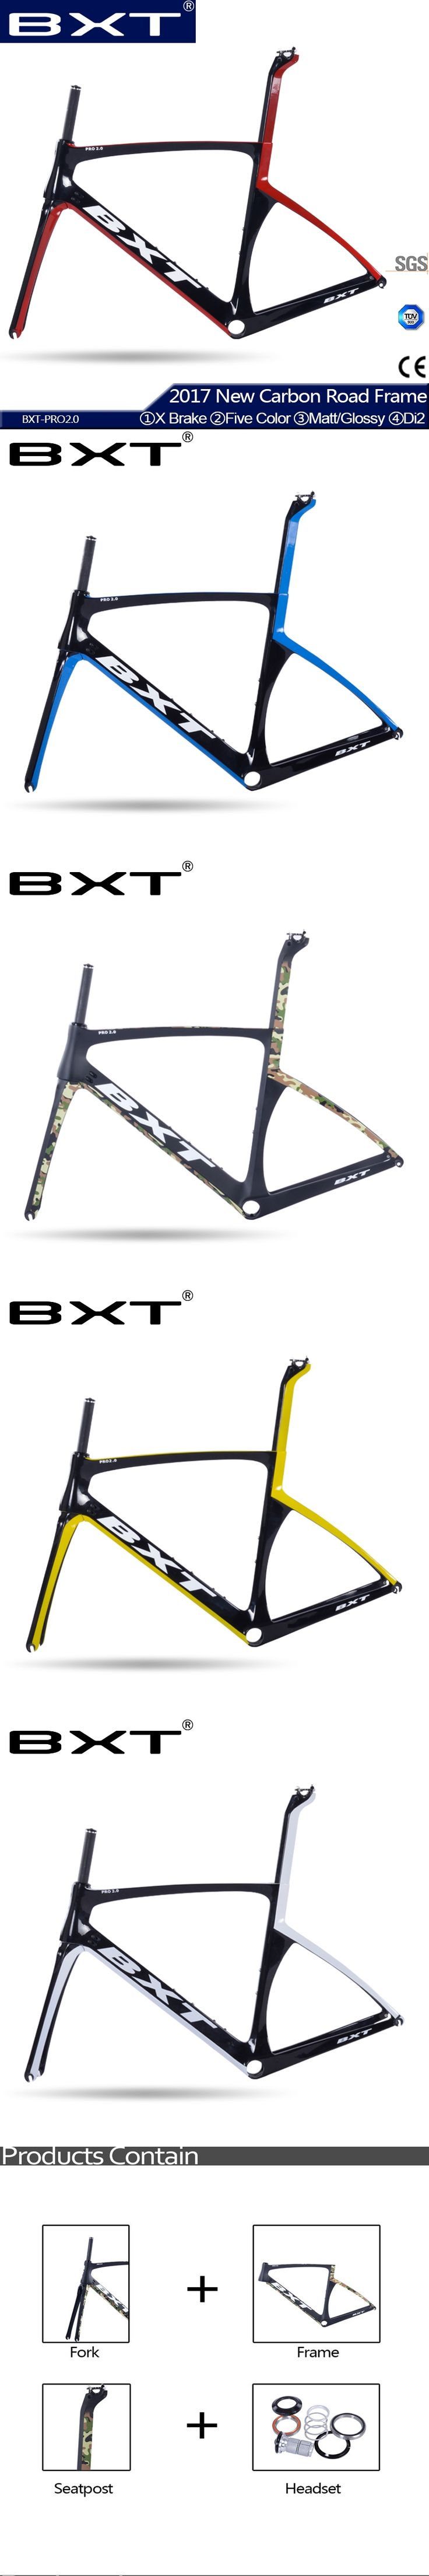 BXT hot sell carbon T800 road bike frame fork+seatpost+frame cheap bicycles carbon frame road bike Five colour free shipping